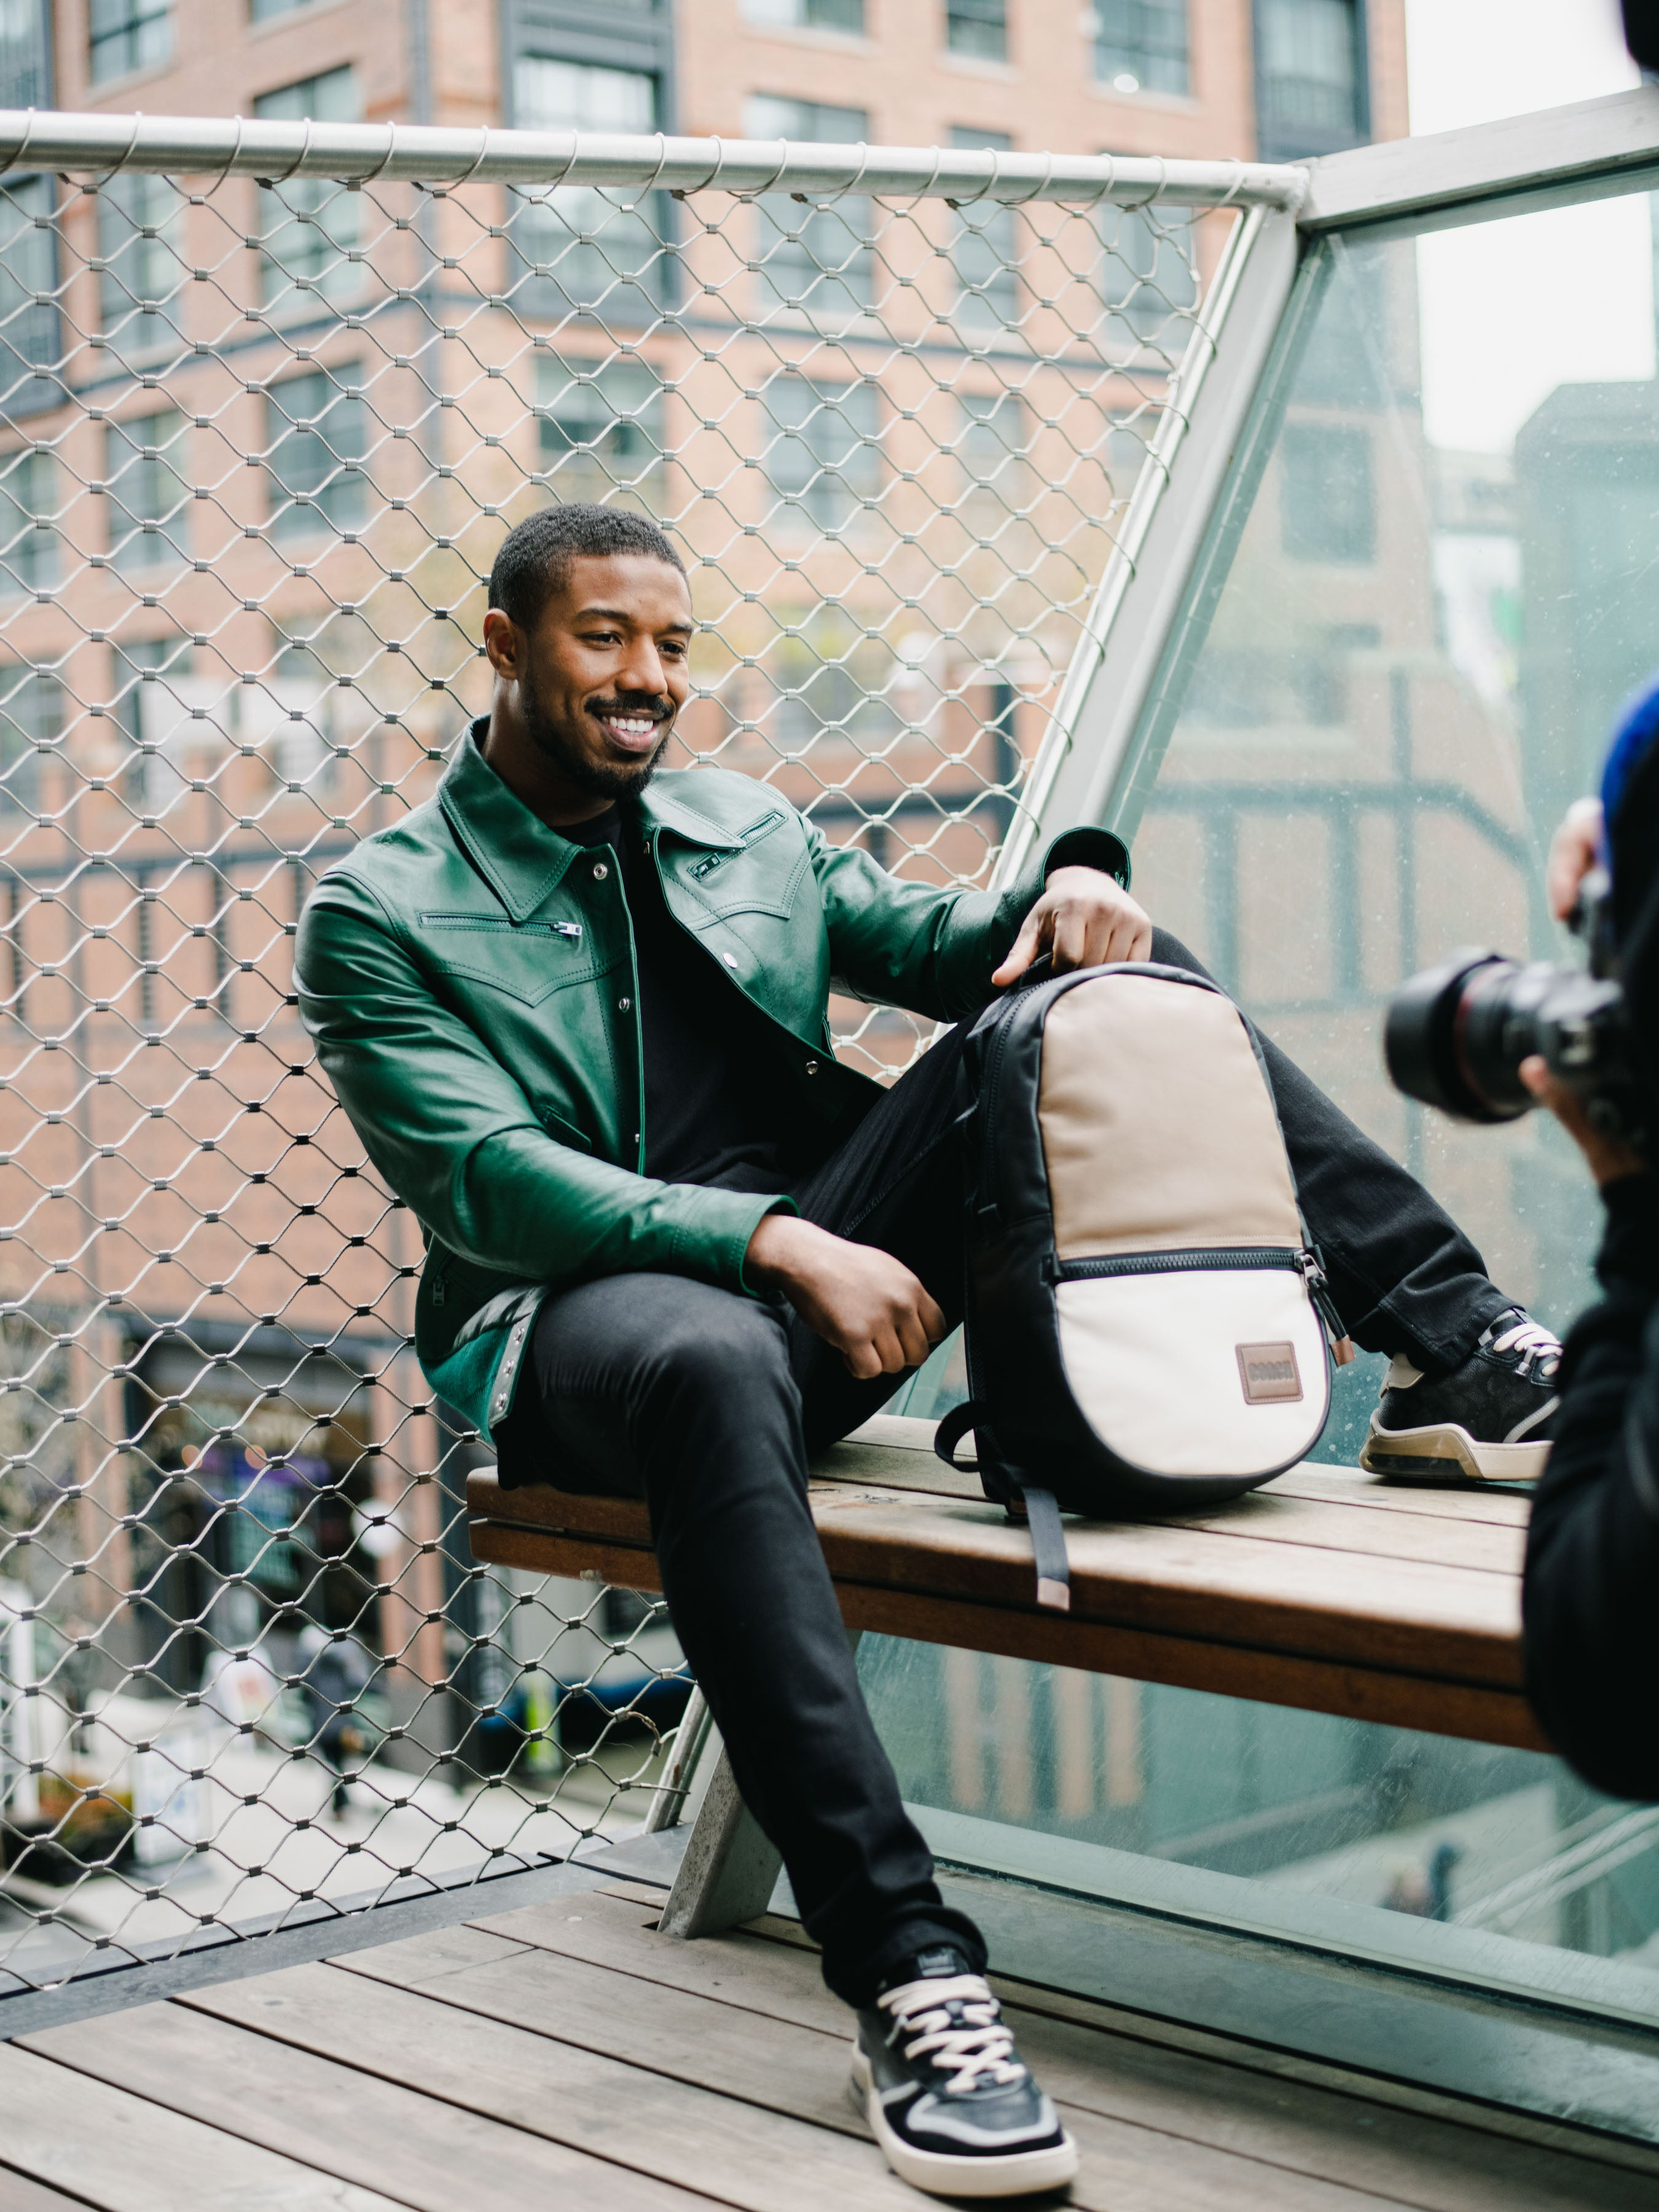 Trainer Launches Spring Marketing campaign With Michael B. Jordan